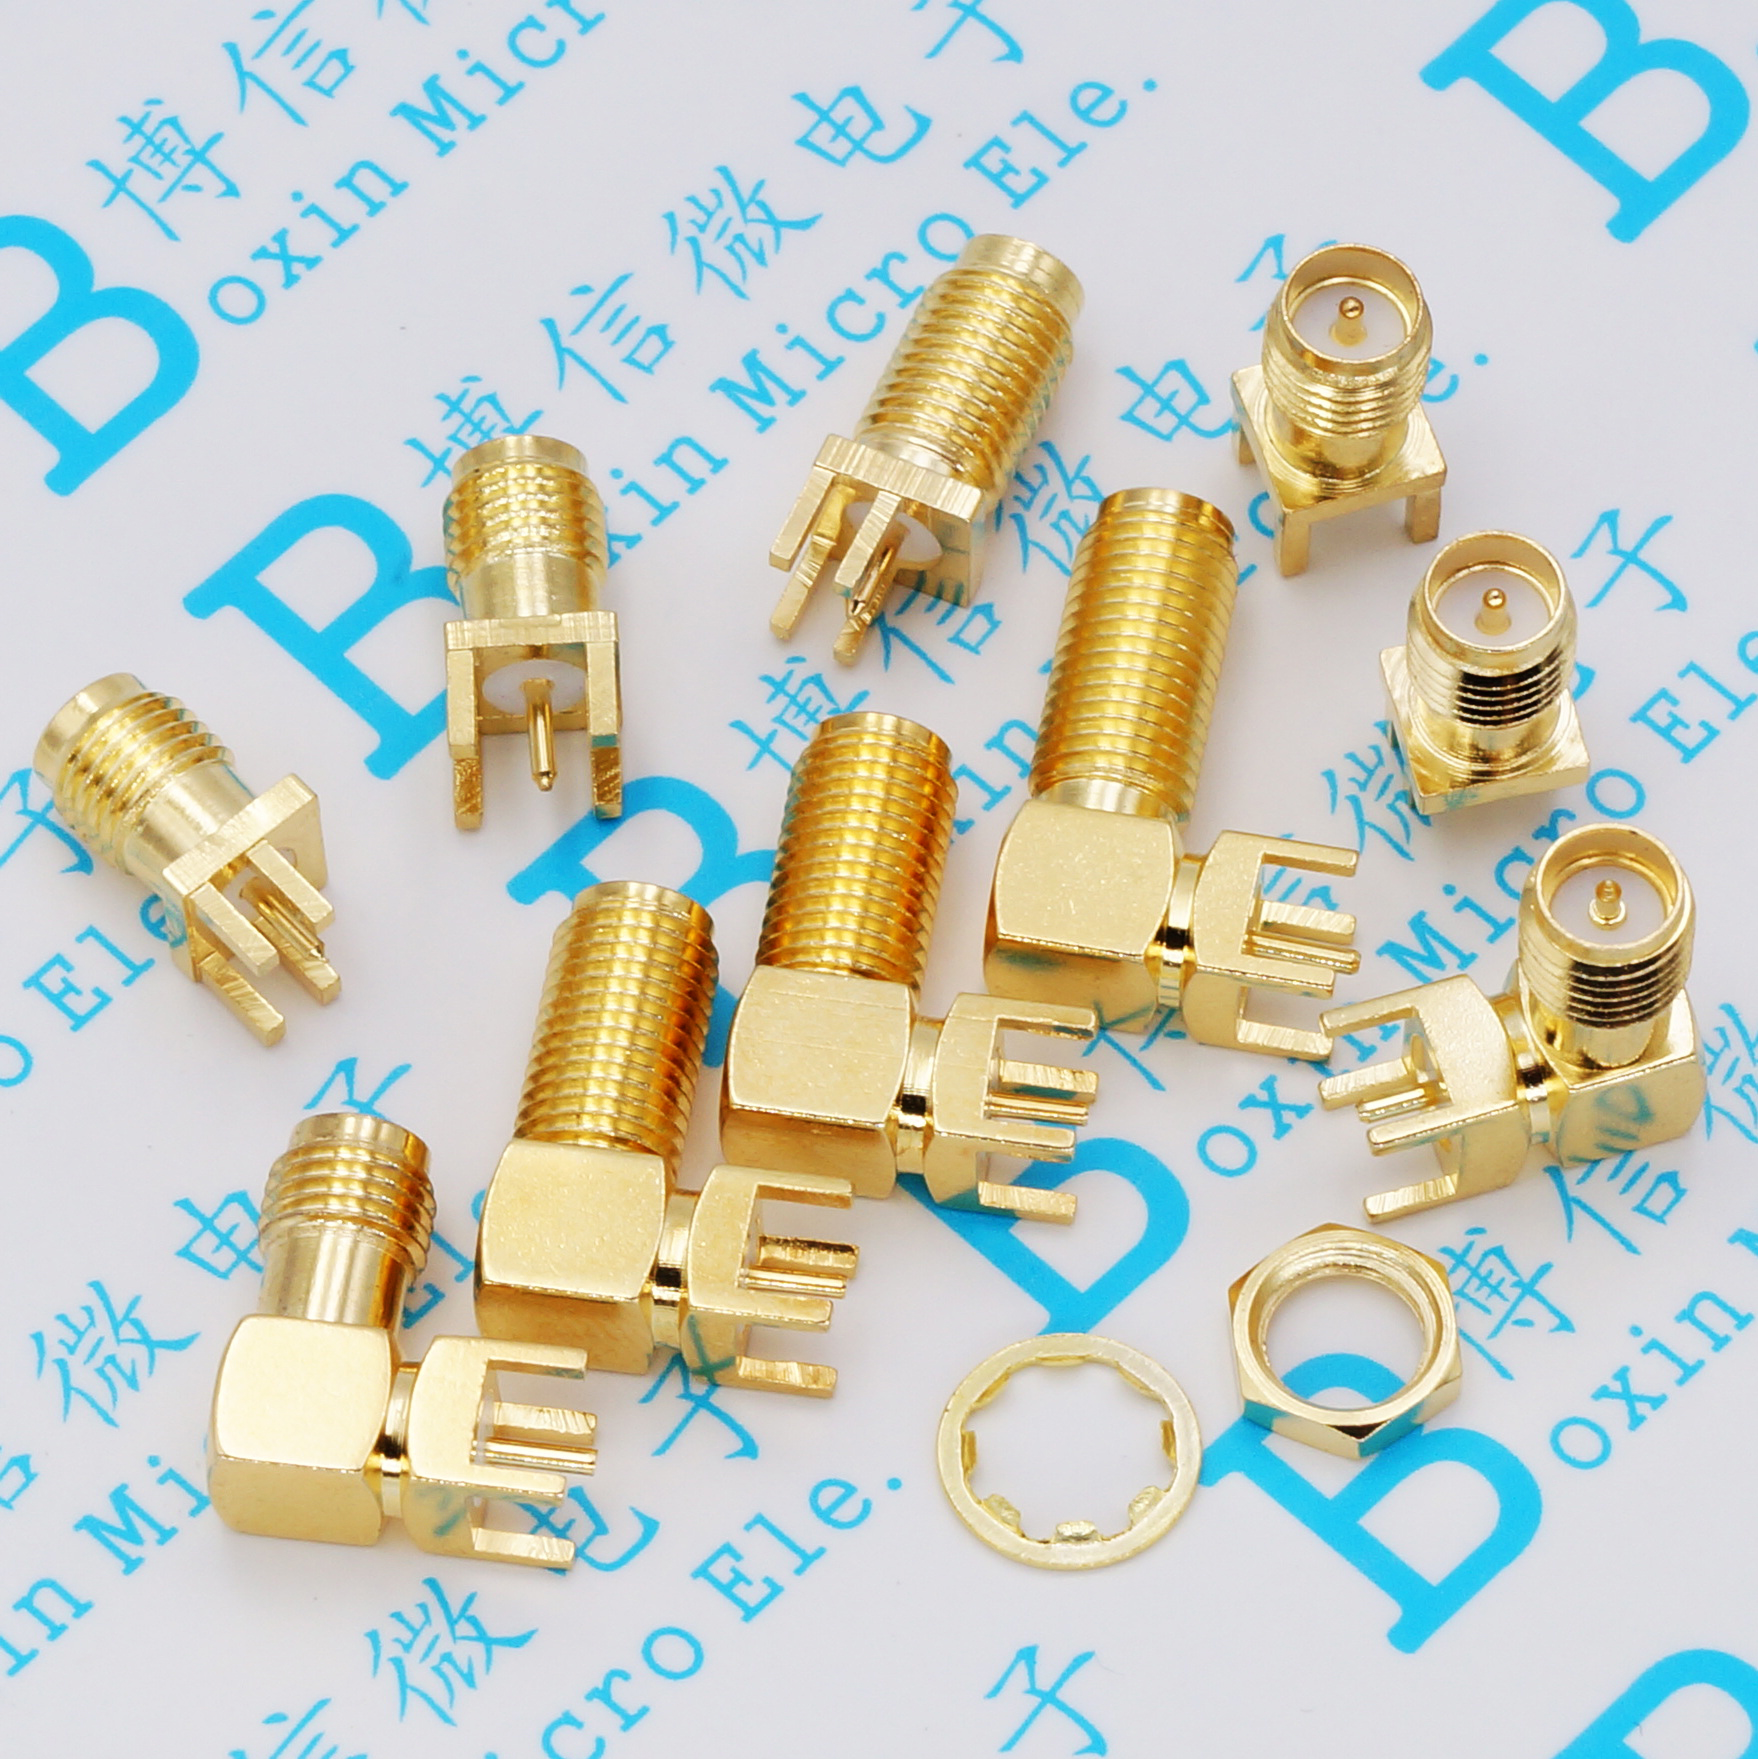 5Pcs SMA Female Jack Solder Nut Edge PCB Clip Straight Mount Gold Plated RF Connector Receptacle Solder SMA-KE/KWE/KHD/IPEX